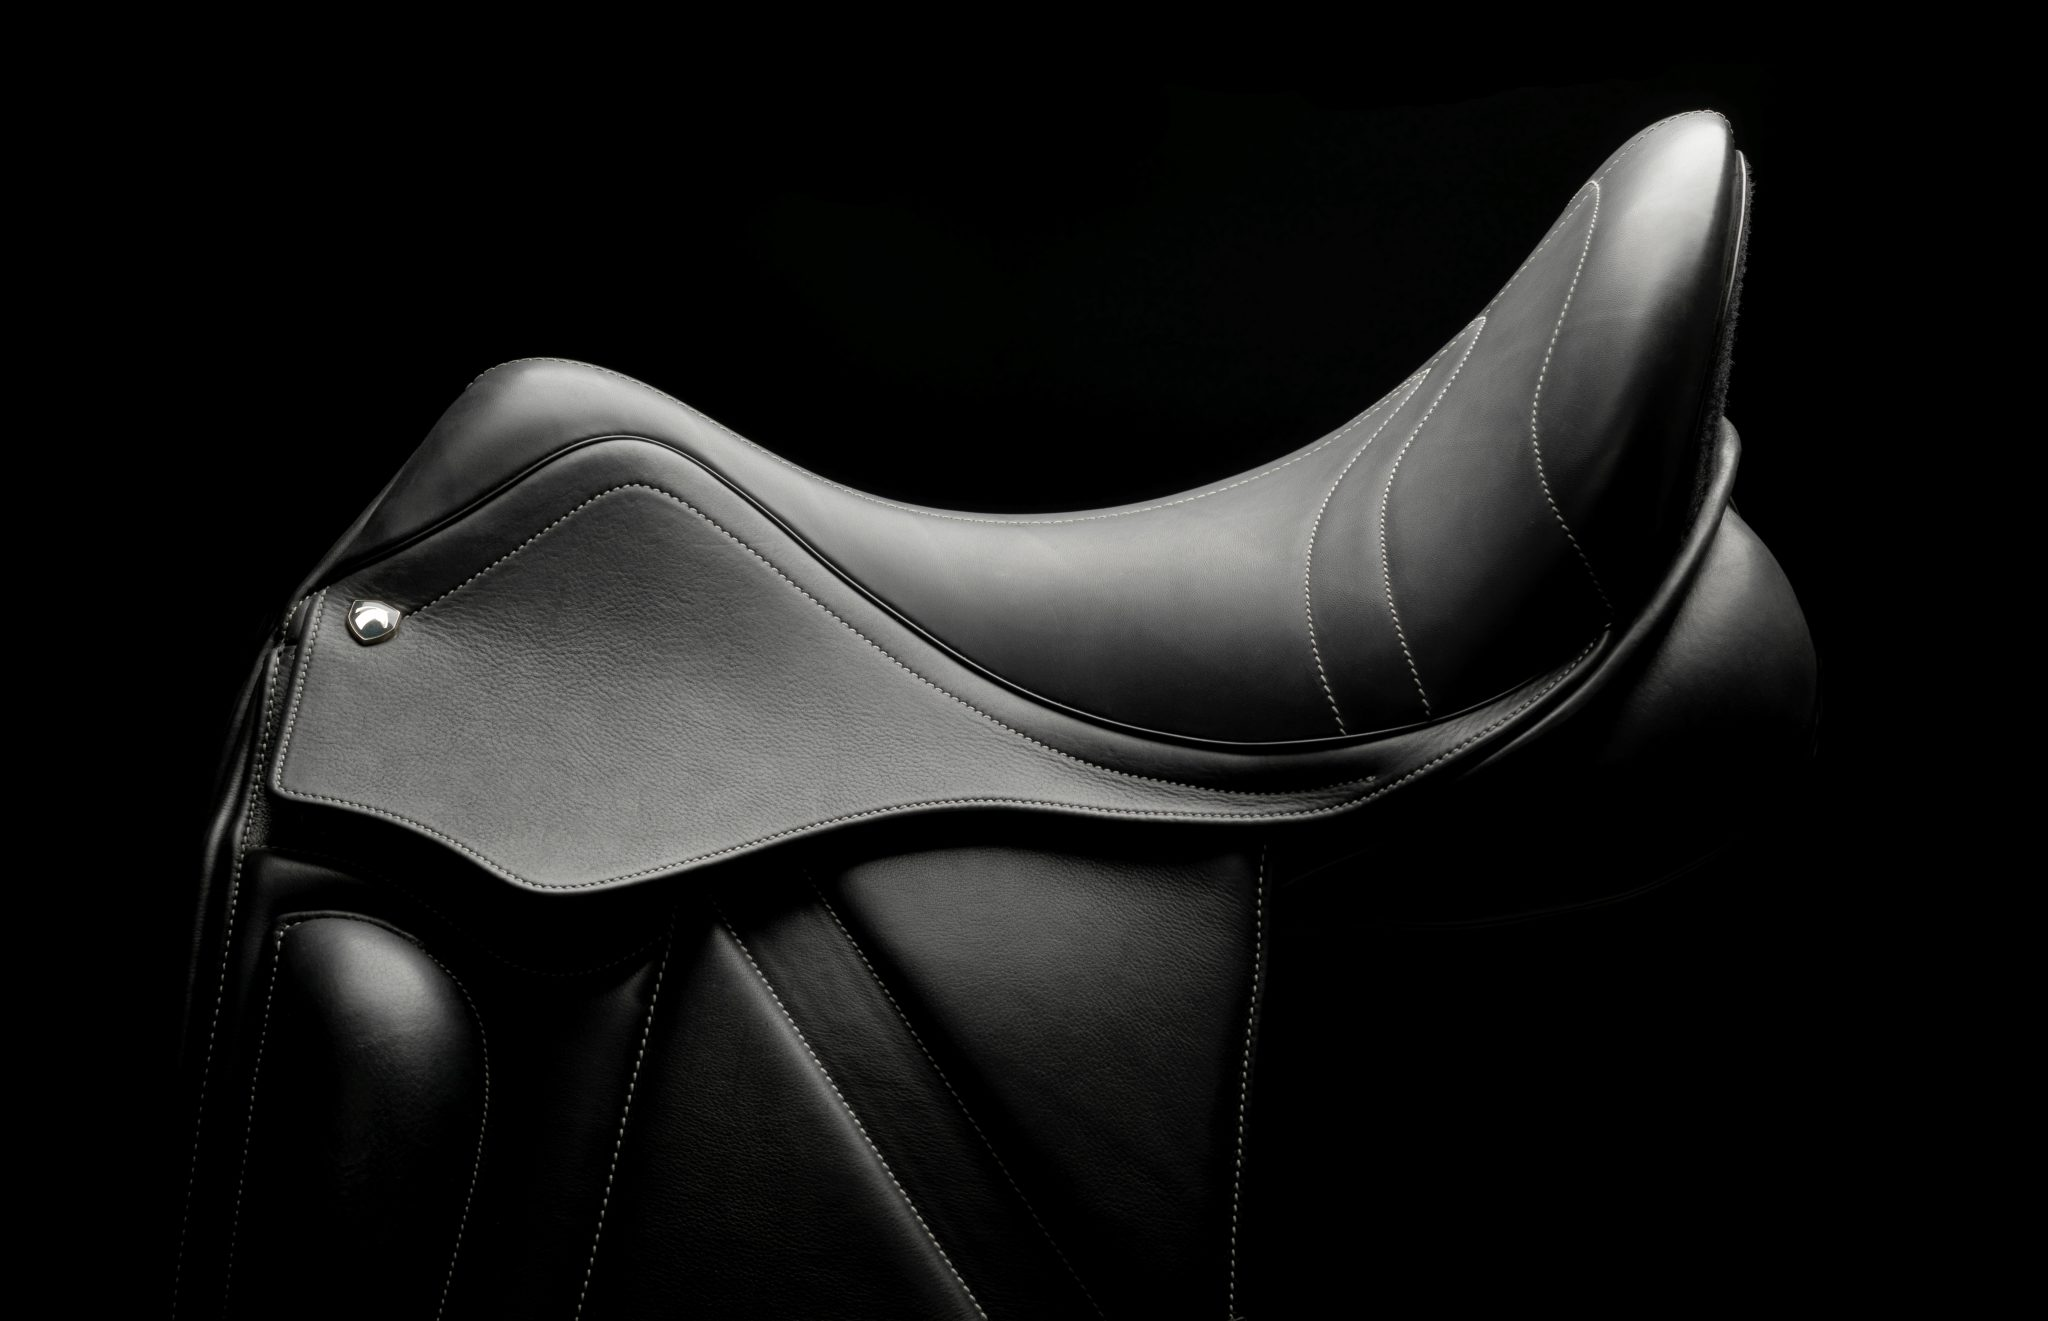 Graziozo saddle black seat